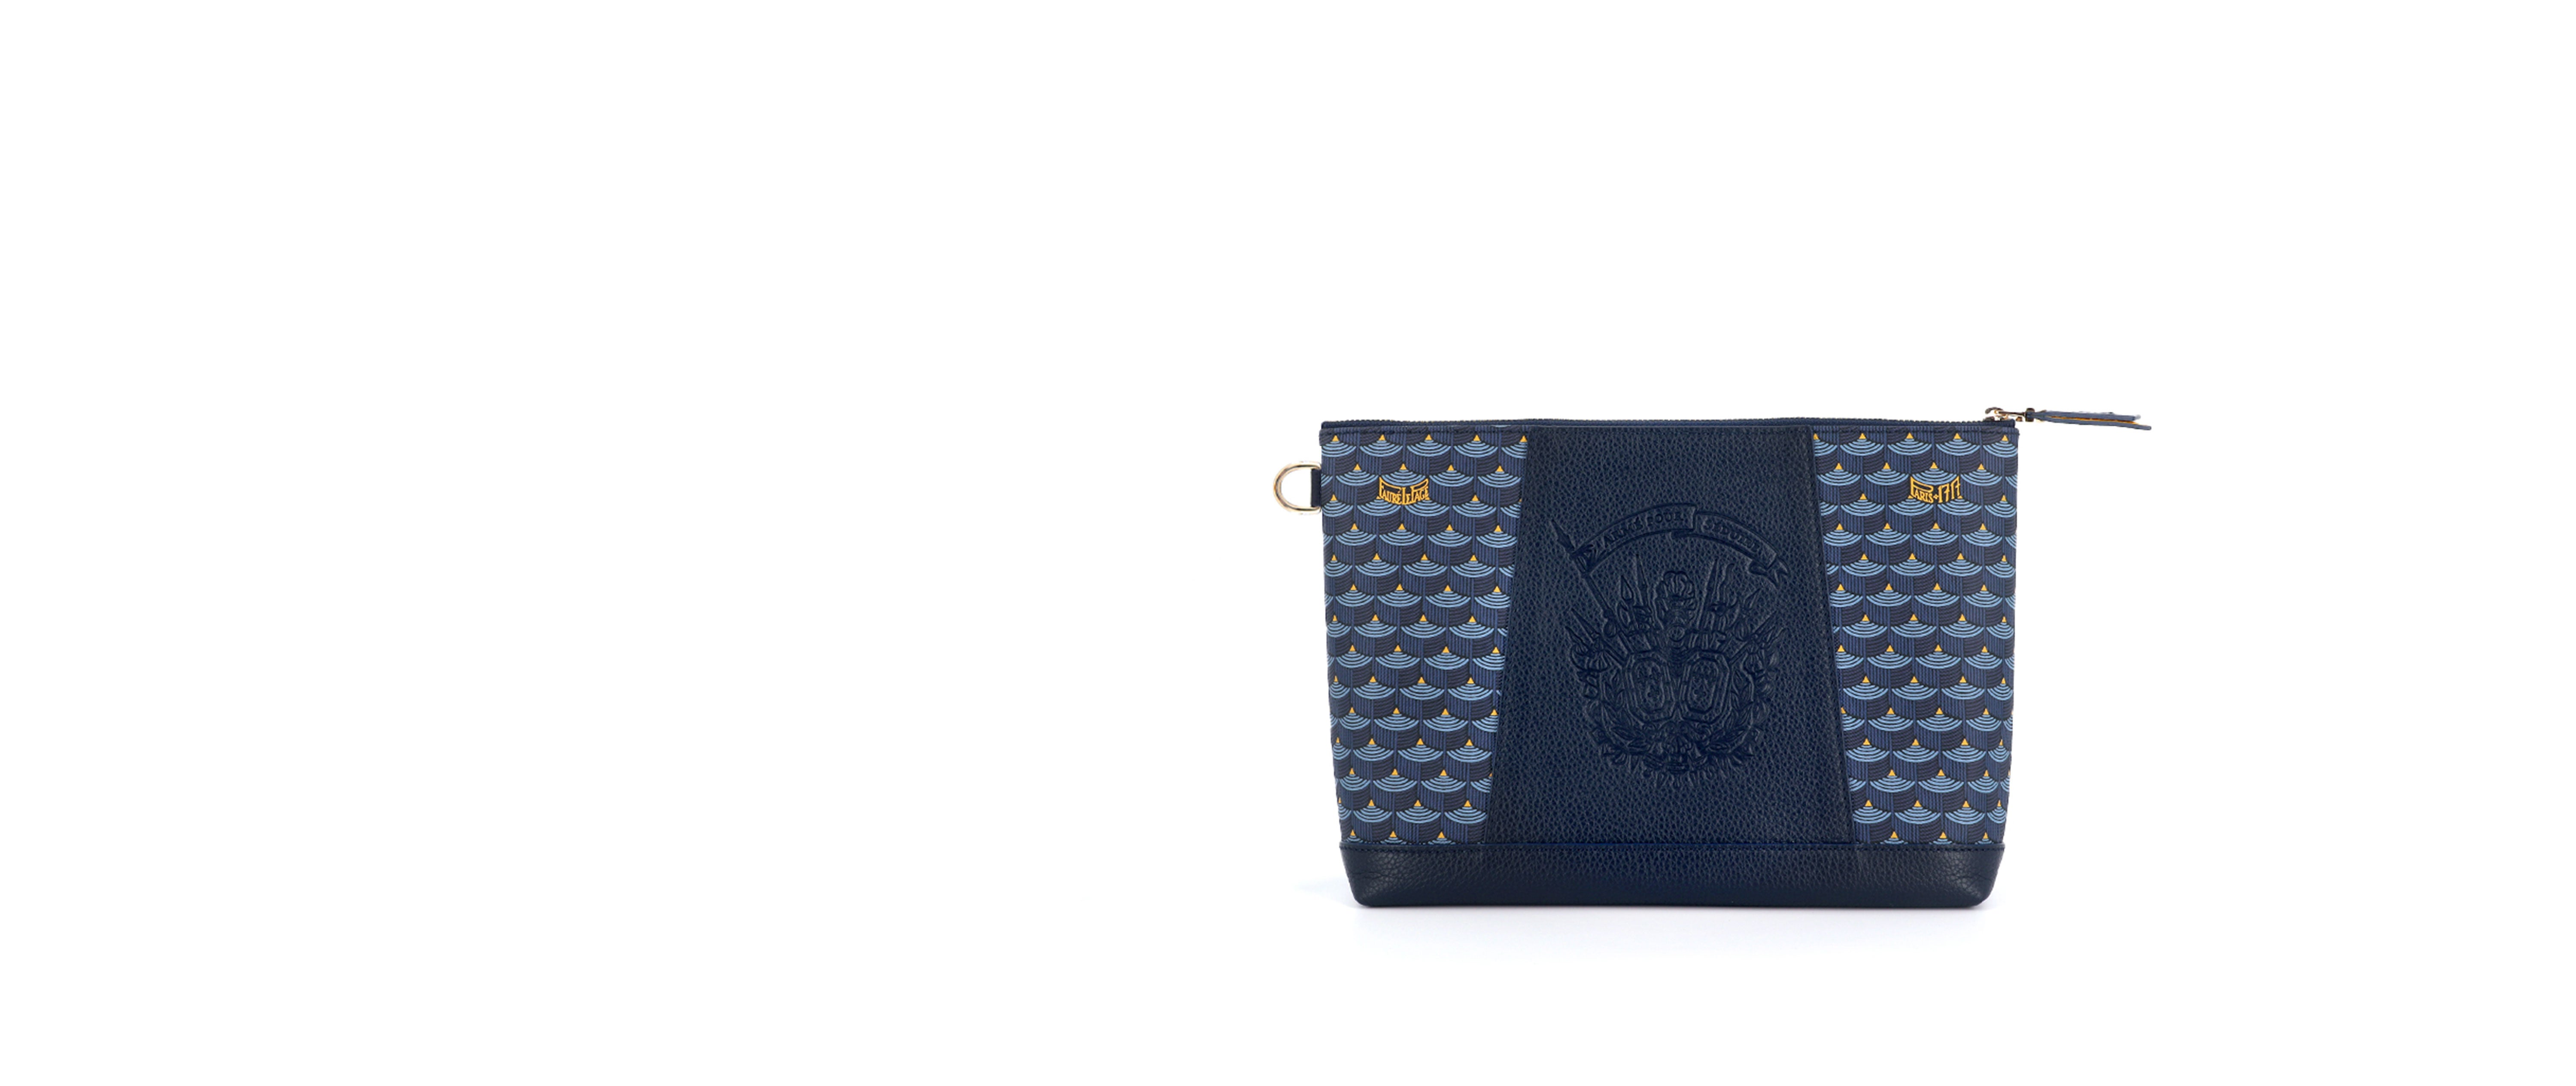 Fauré Le Page French Maroquinerie creating weapons of seduction since 1717. The oldest luxury maroquinier -leather goods company- in the world. Discover our Creations.